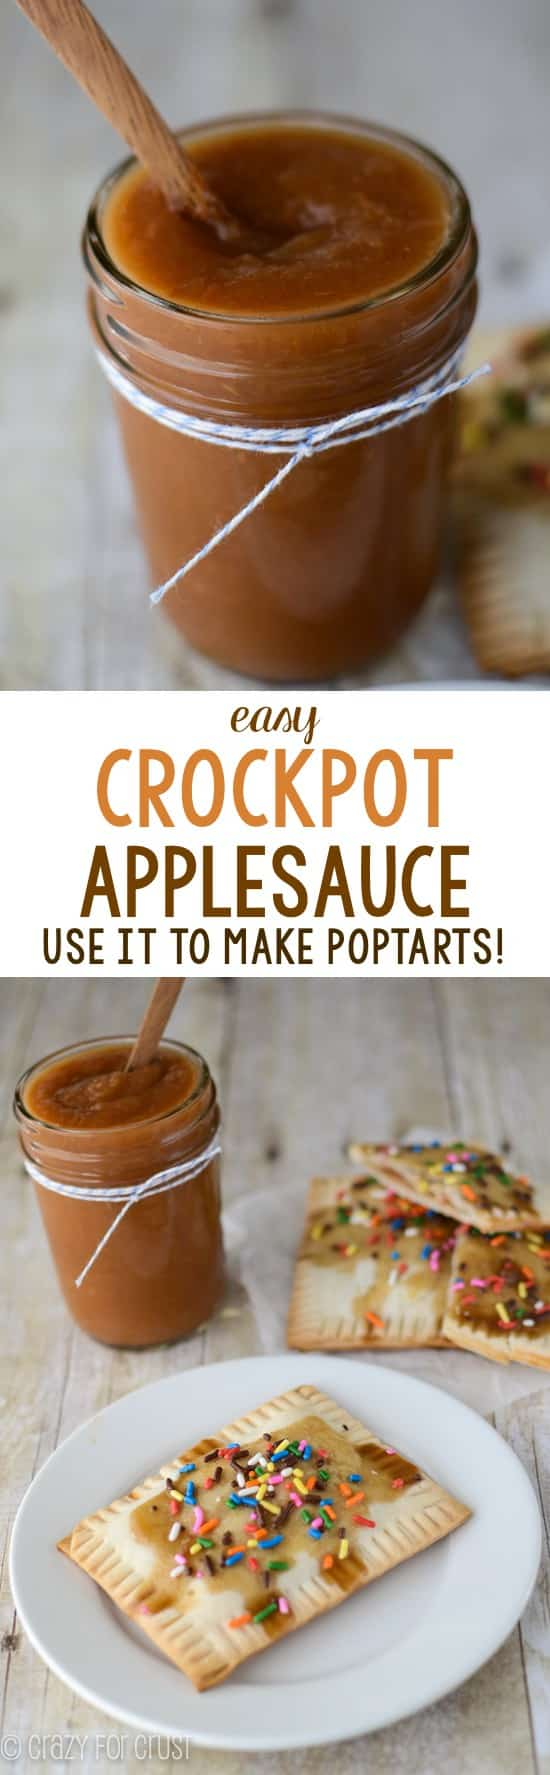 Easy Crockpot Applesauce - just 4 ingredients to the PERFECT applesauce everyone loves. It's great hot or cold, or put it in recipes like Homemade Poptarts!